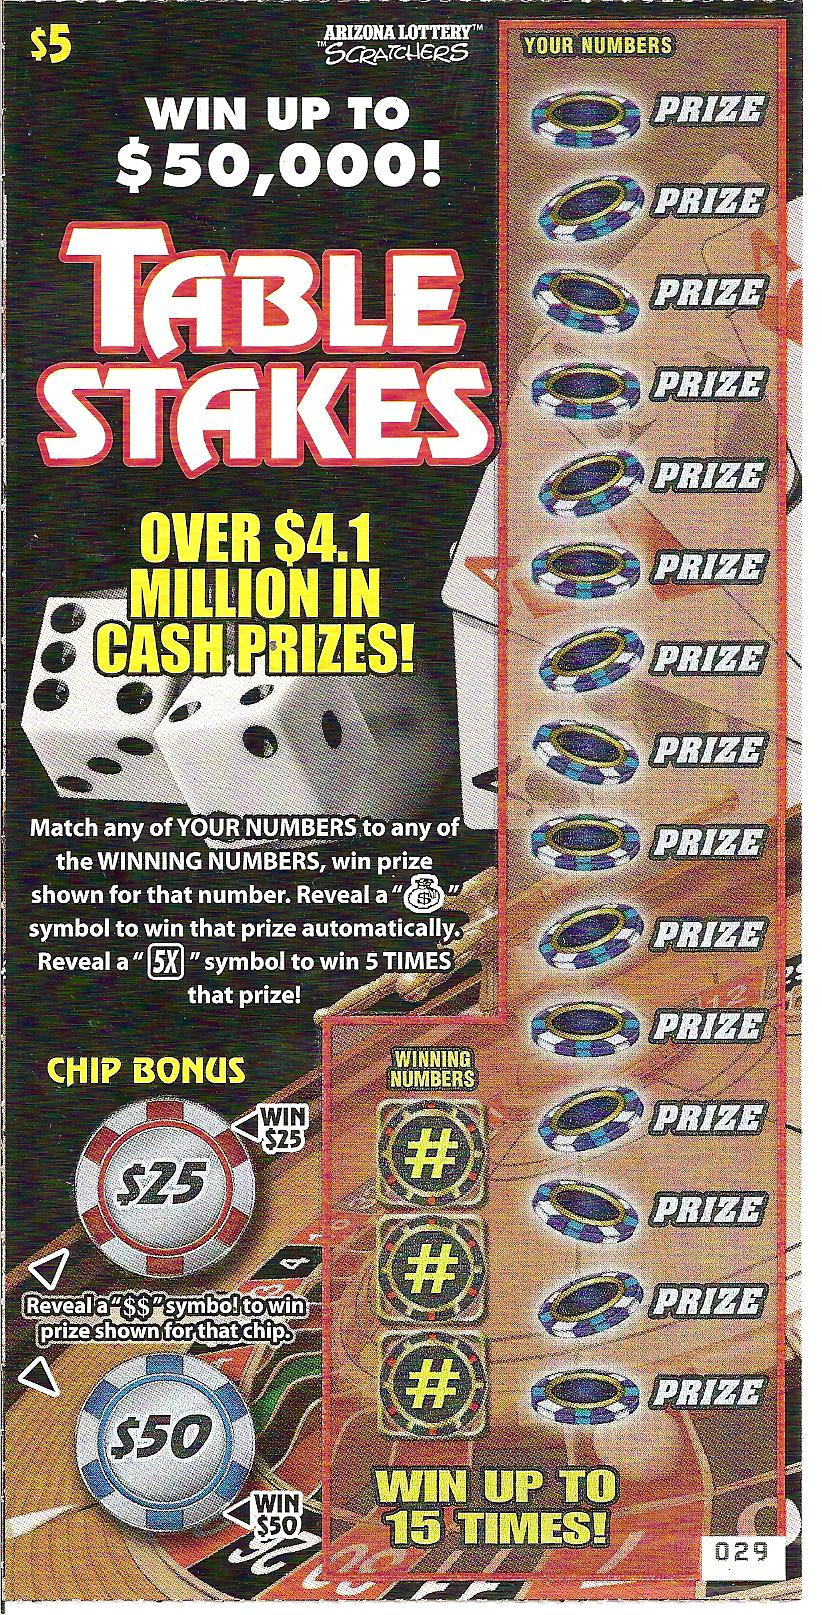 azlottery.wordpress.com